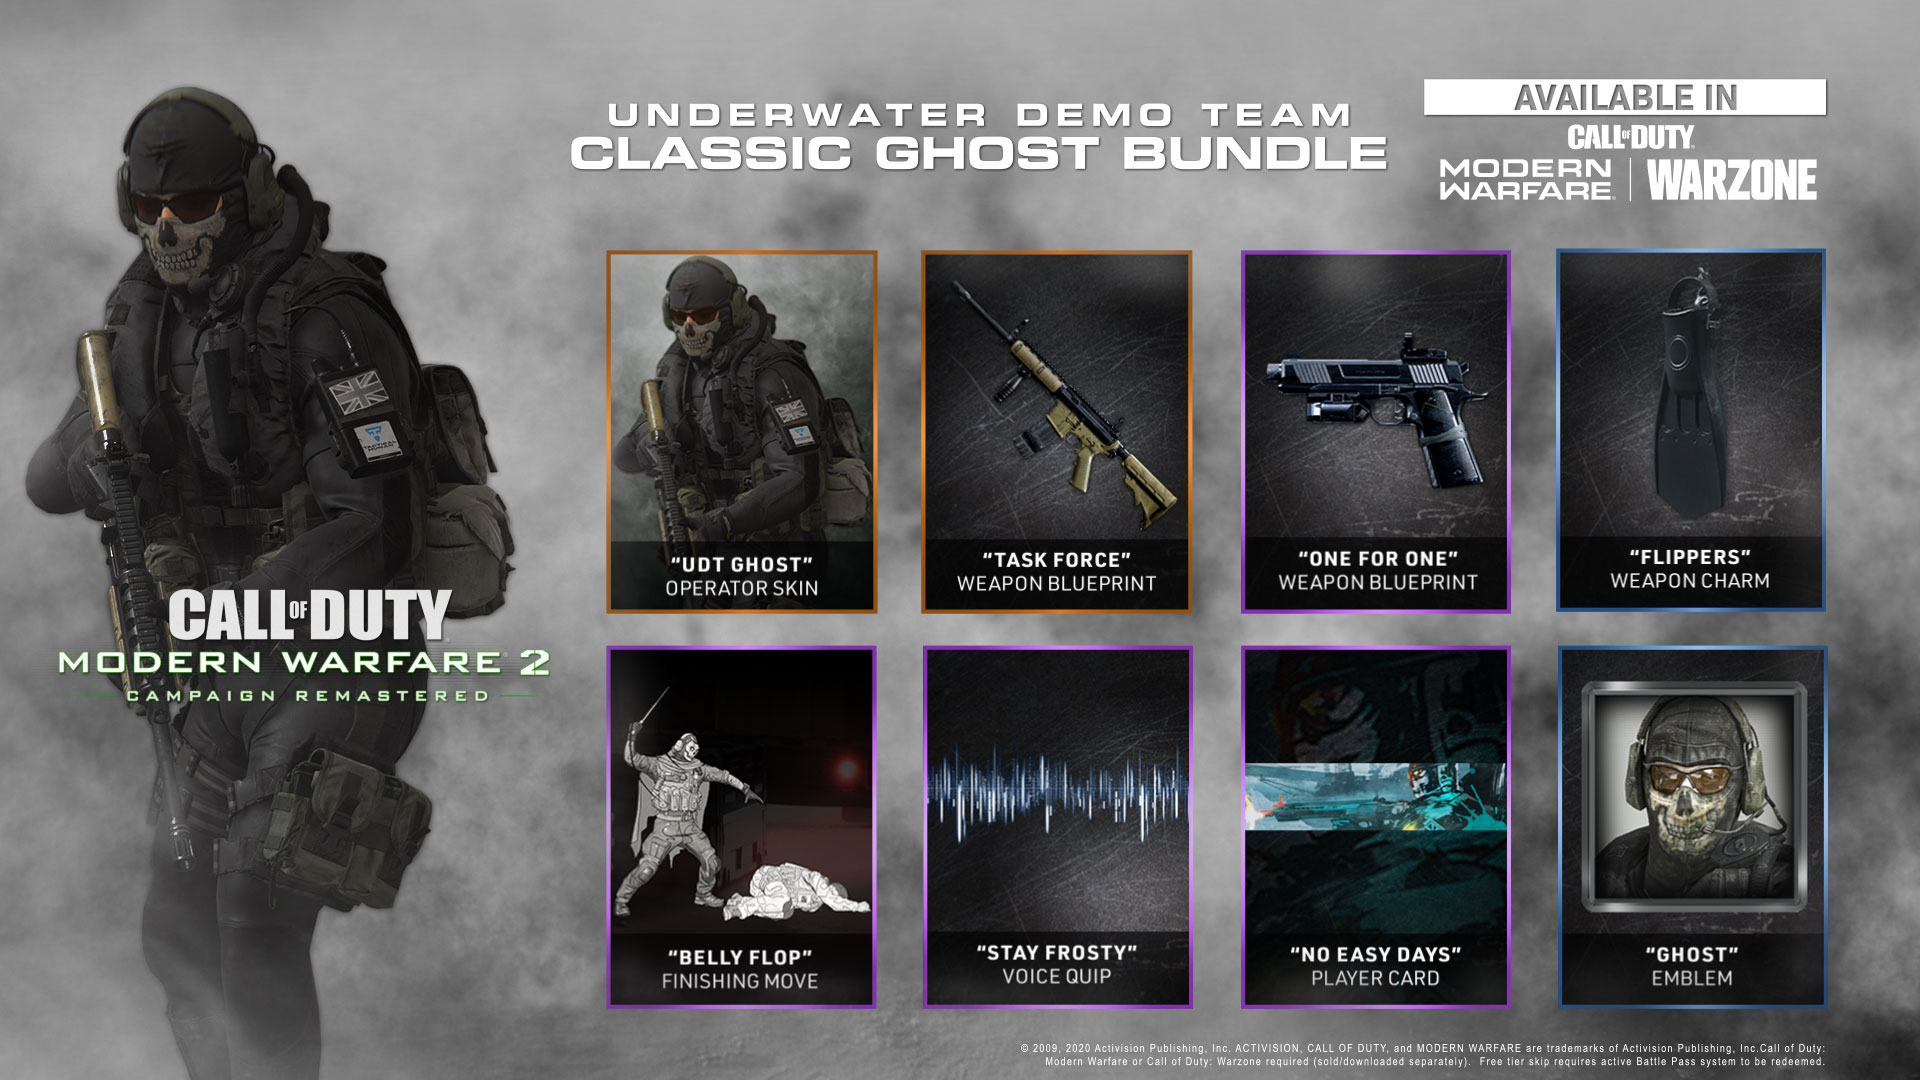 Announcing Call of Duty®: Modern Warfare® 2 Campaign Remastered, featuring the UDT Classic Ghost Bundle for instant access in Call of Duty: Modern Warfare, including Call of Duty: Warzone - Image 2